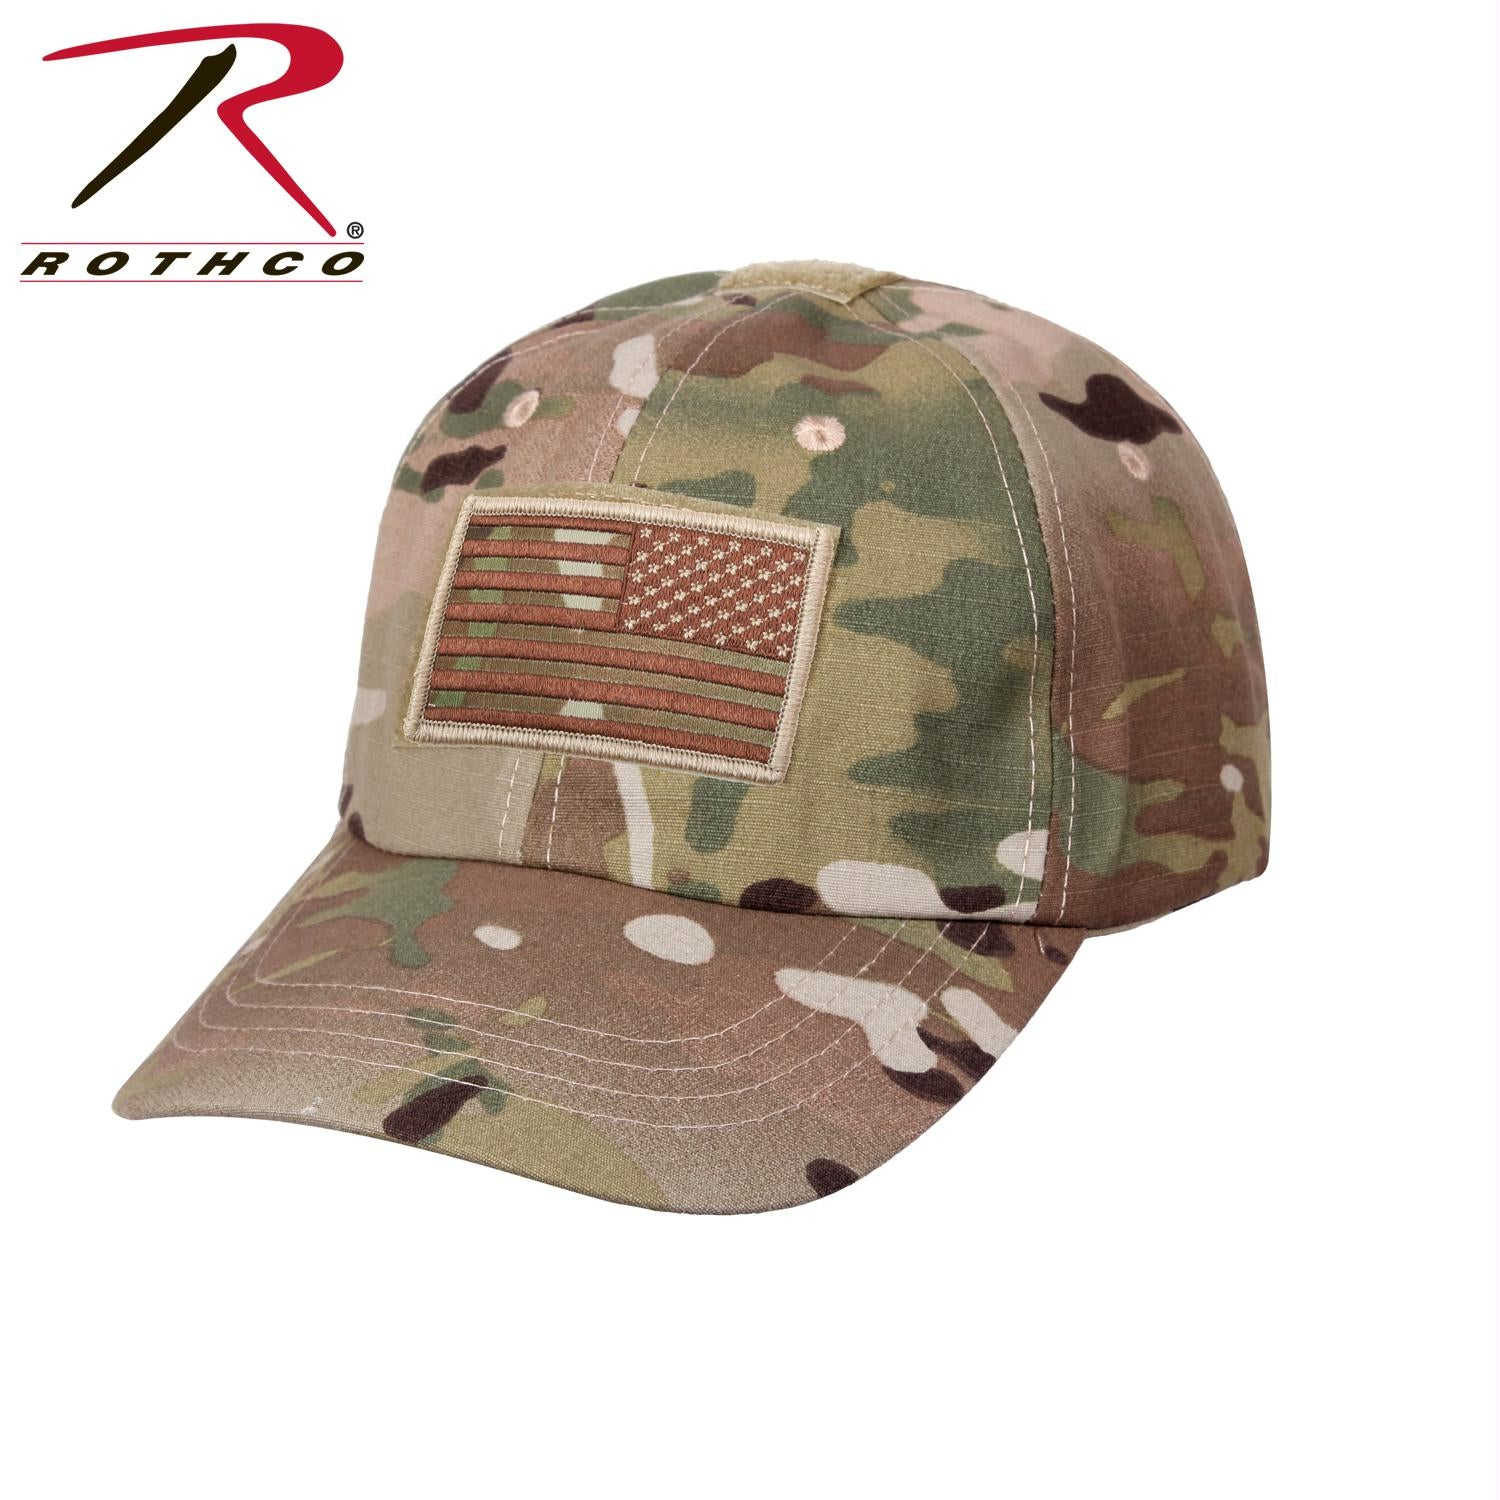 Rothco Tactical Operator Cap - MultiCam